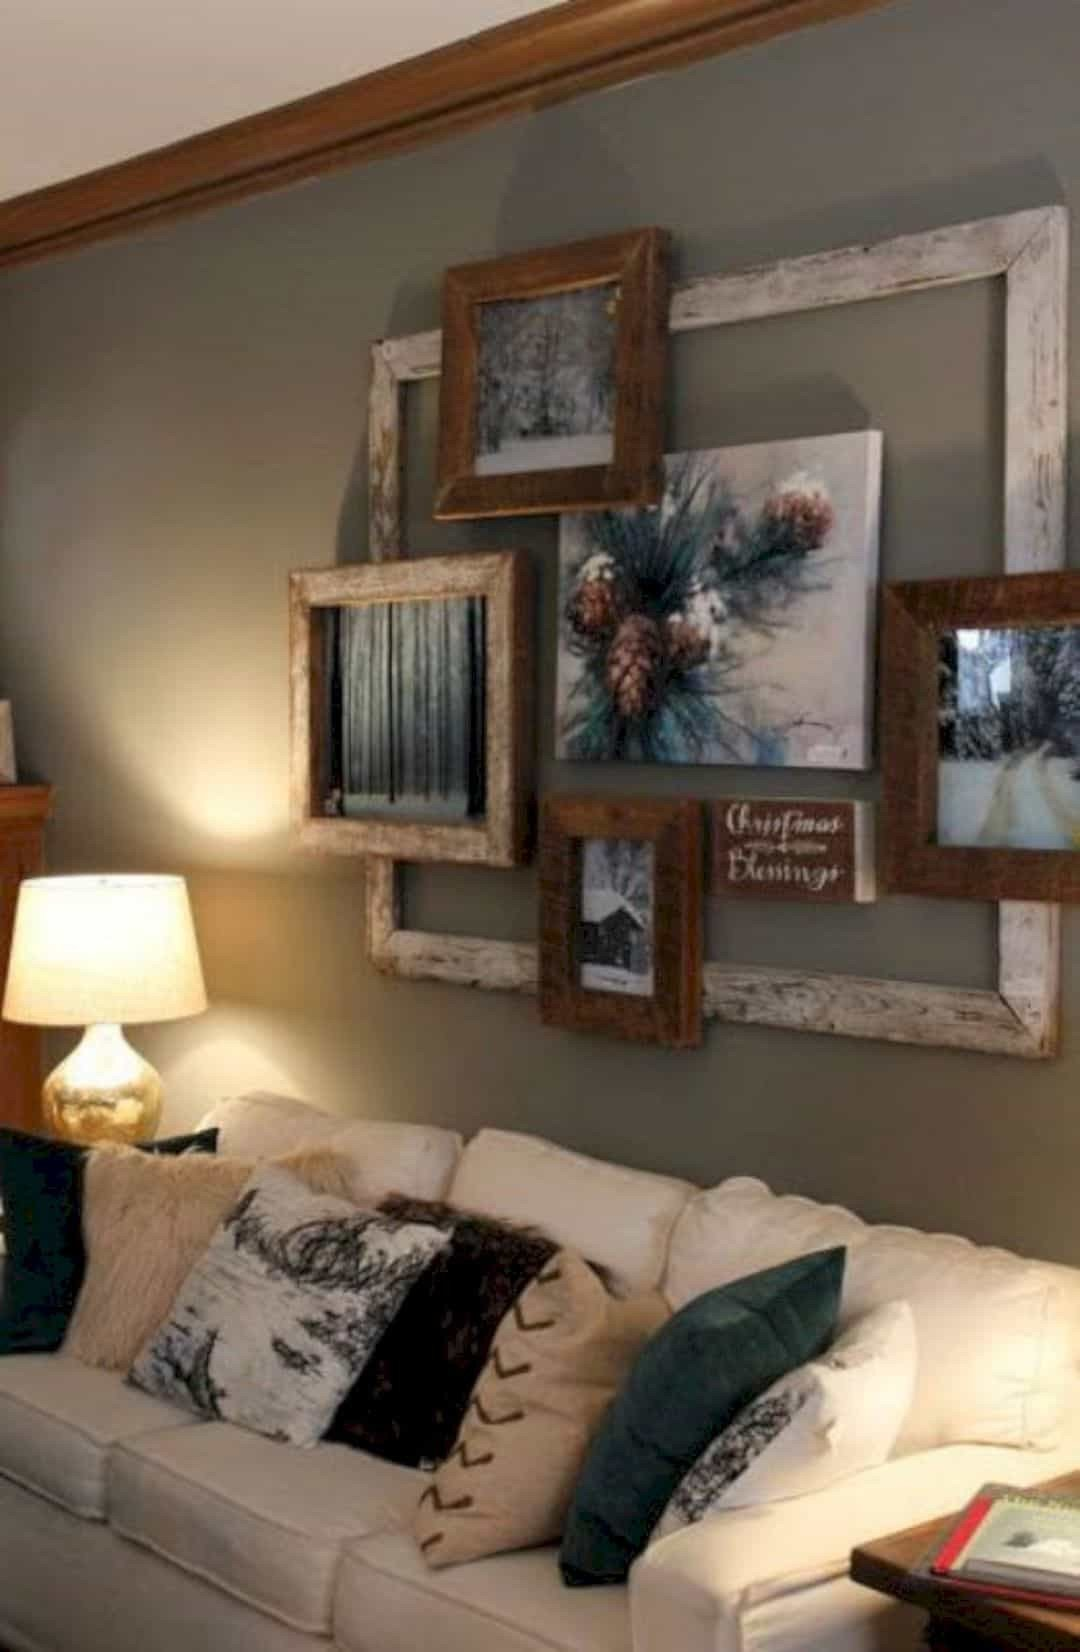 Diy Rustic Living Room Decor New 17 Diy Rustic Home Decor Ideas for Living Room